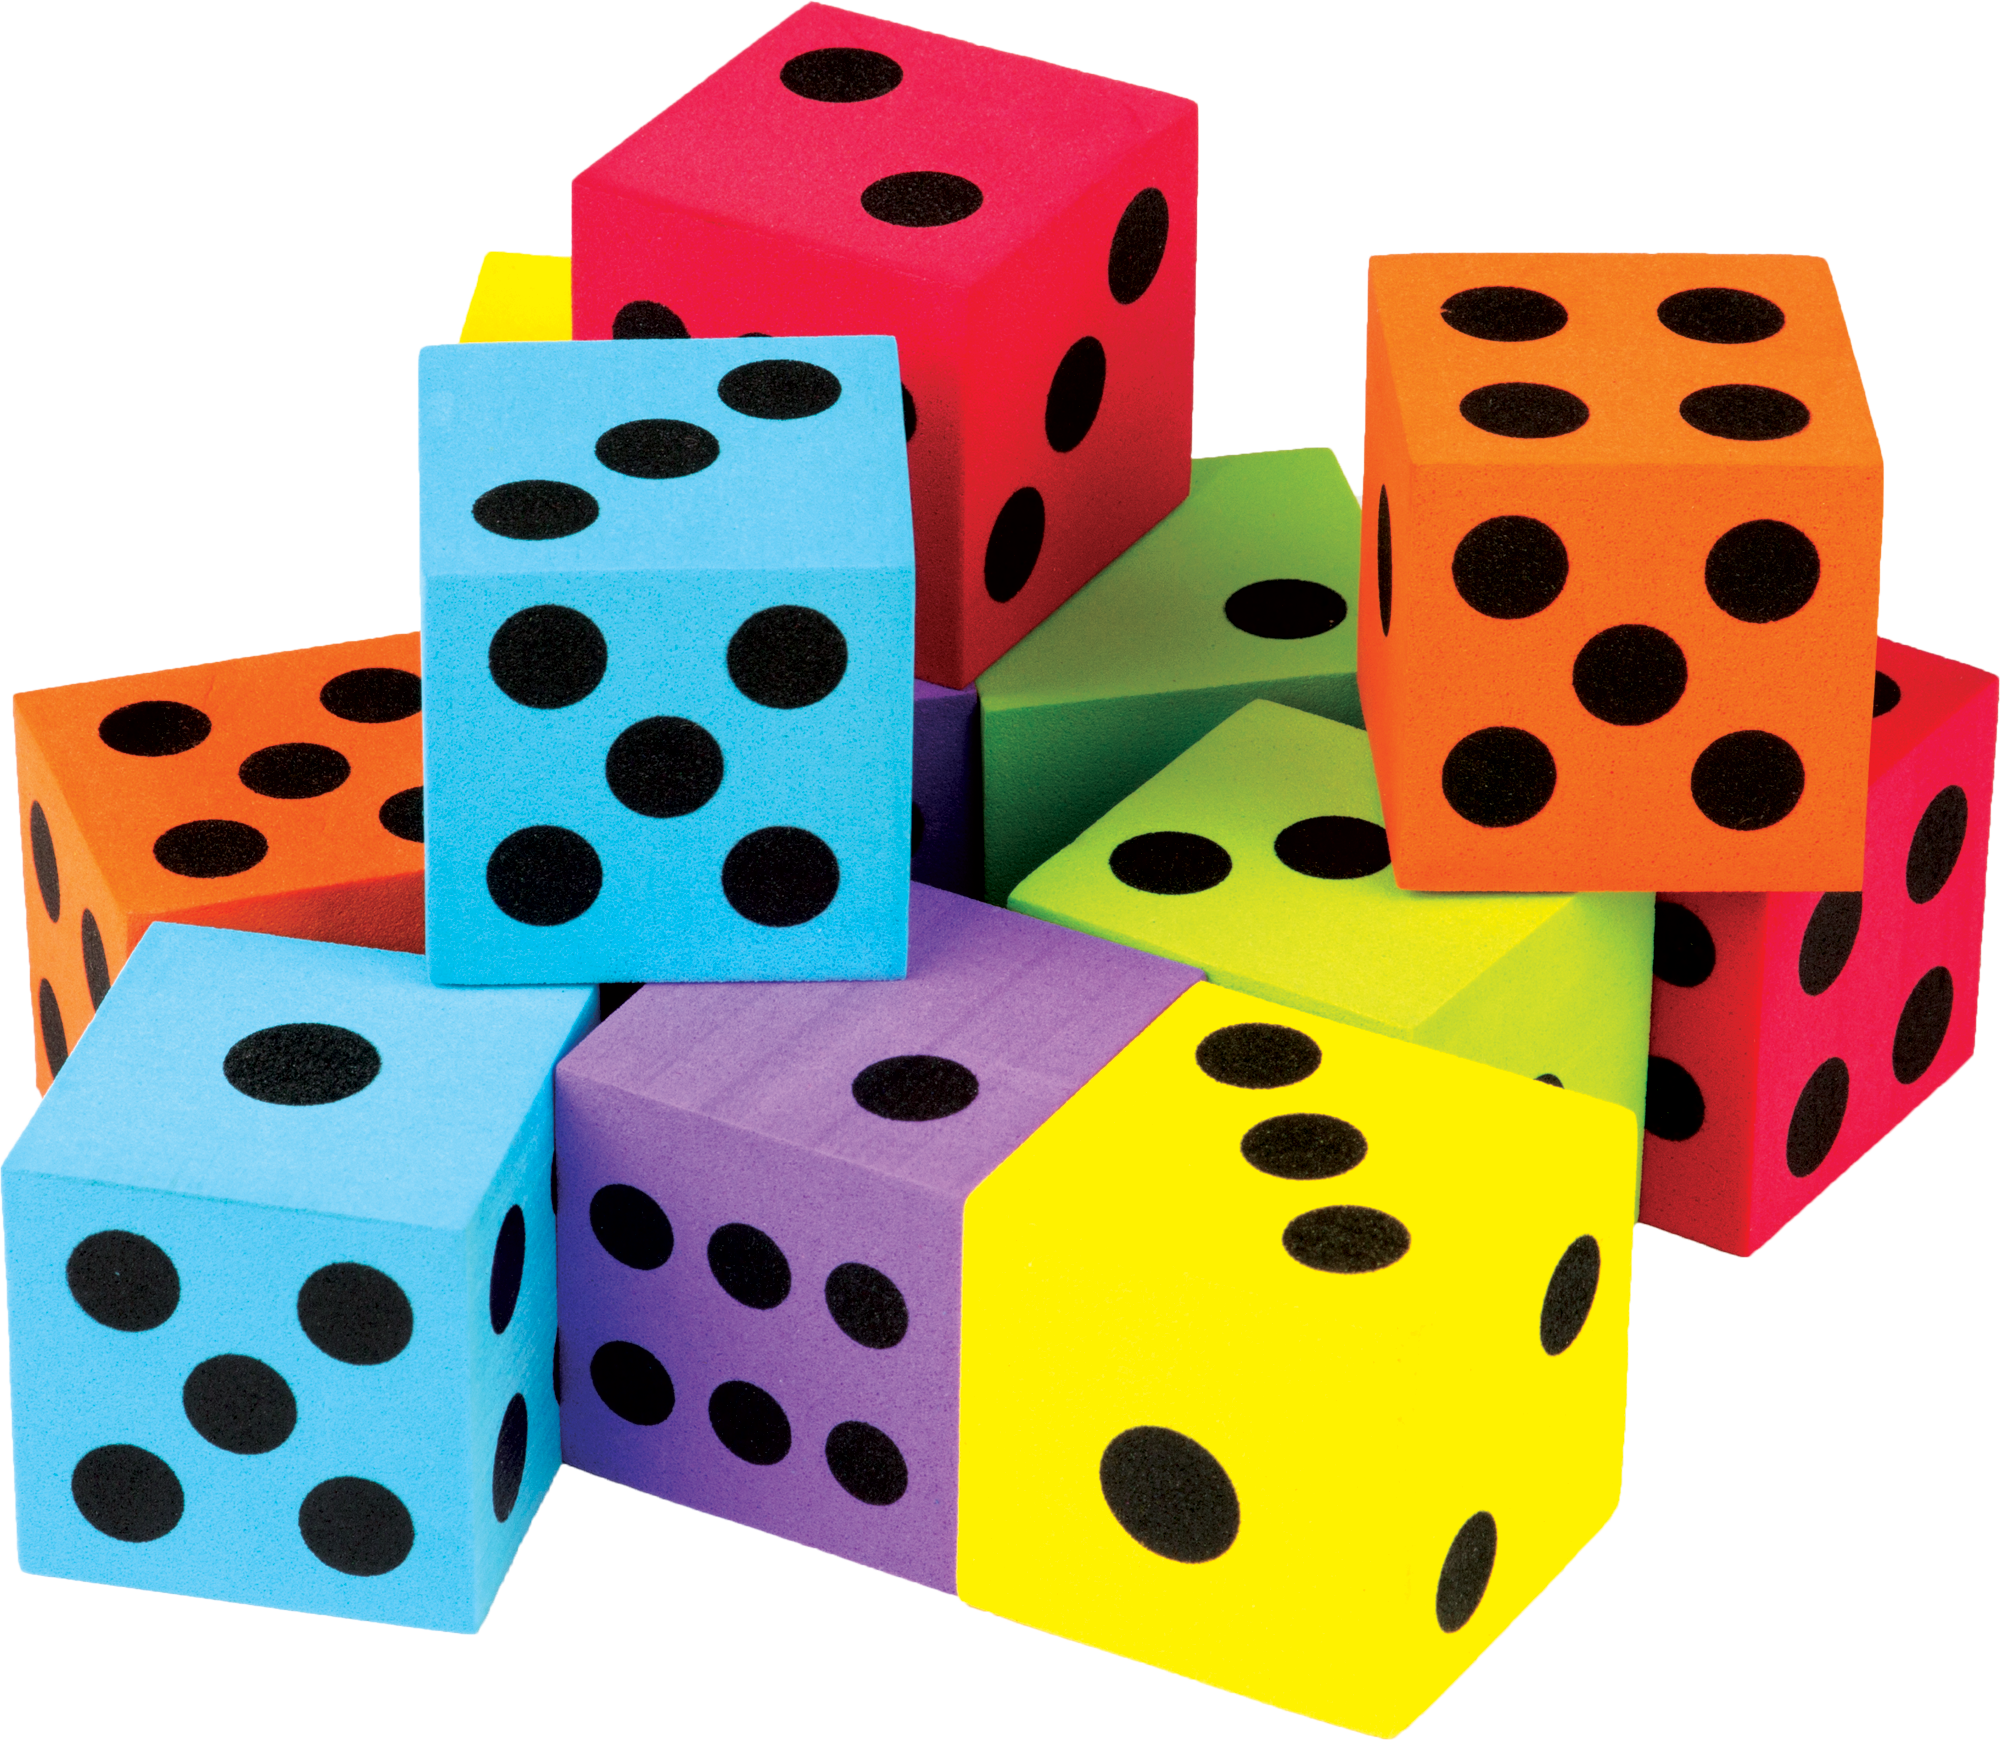 Dice clipart colorful. Math game clip arts